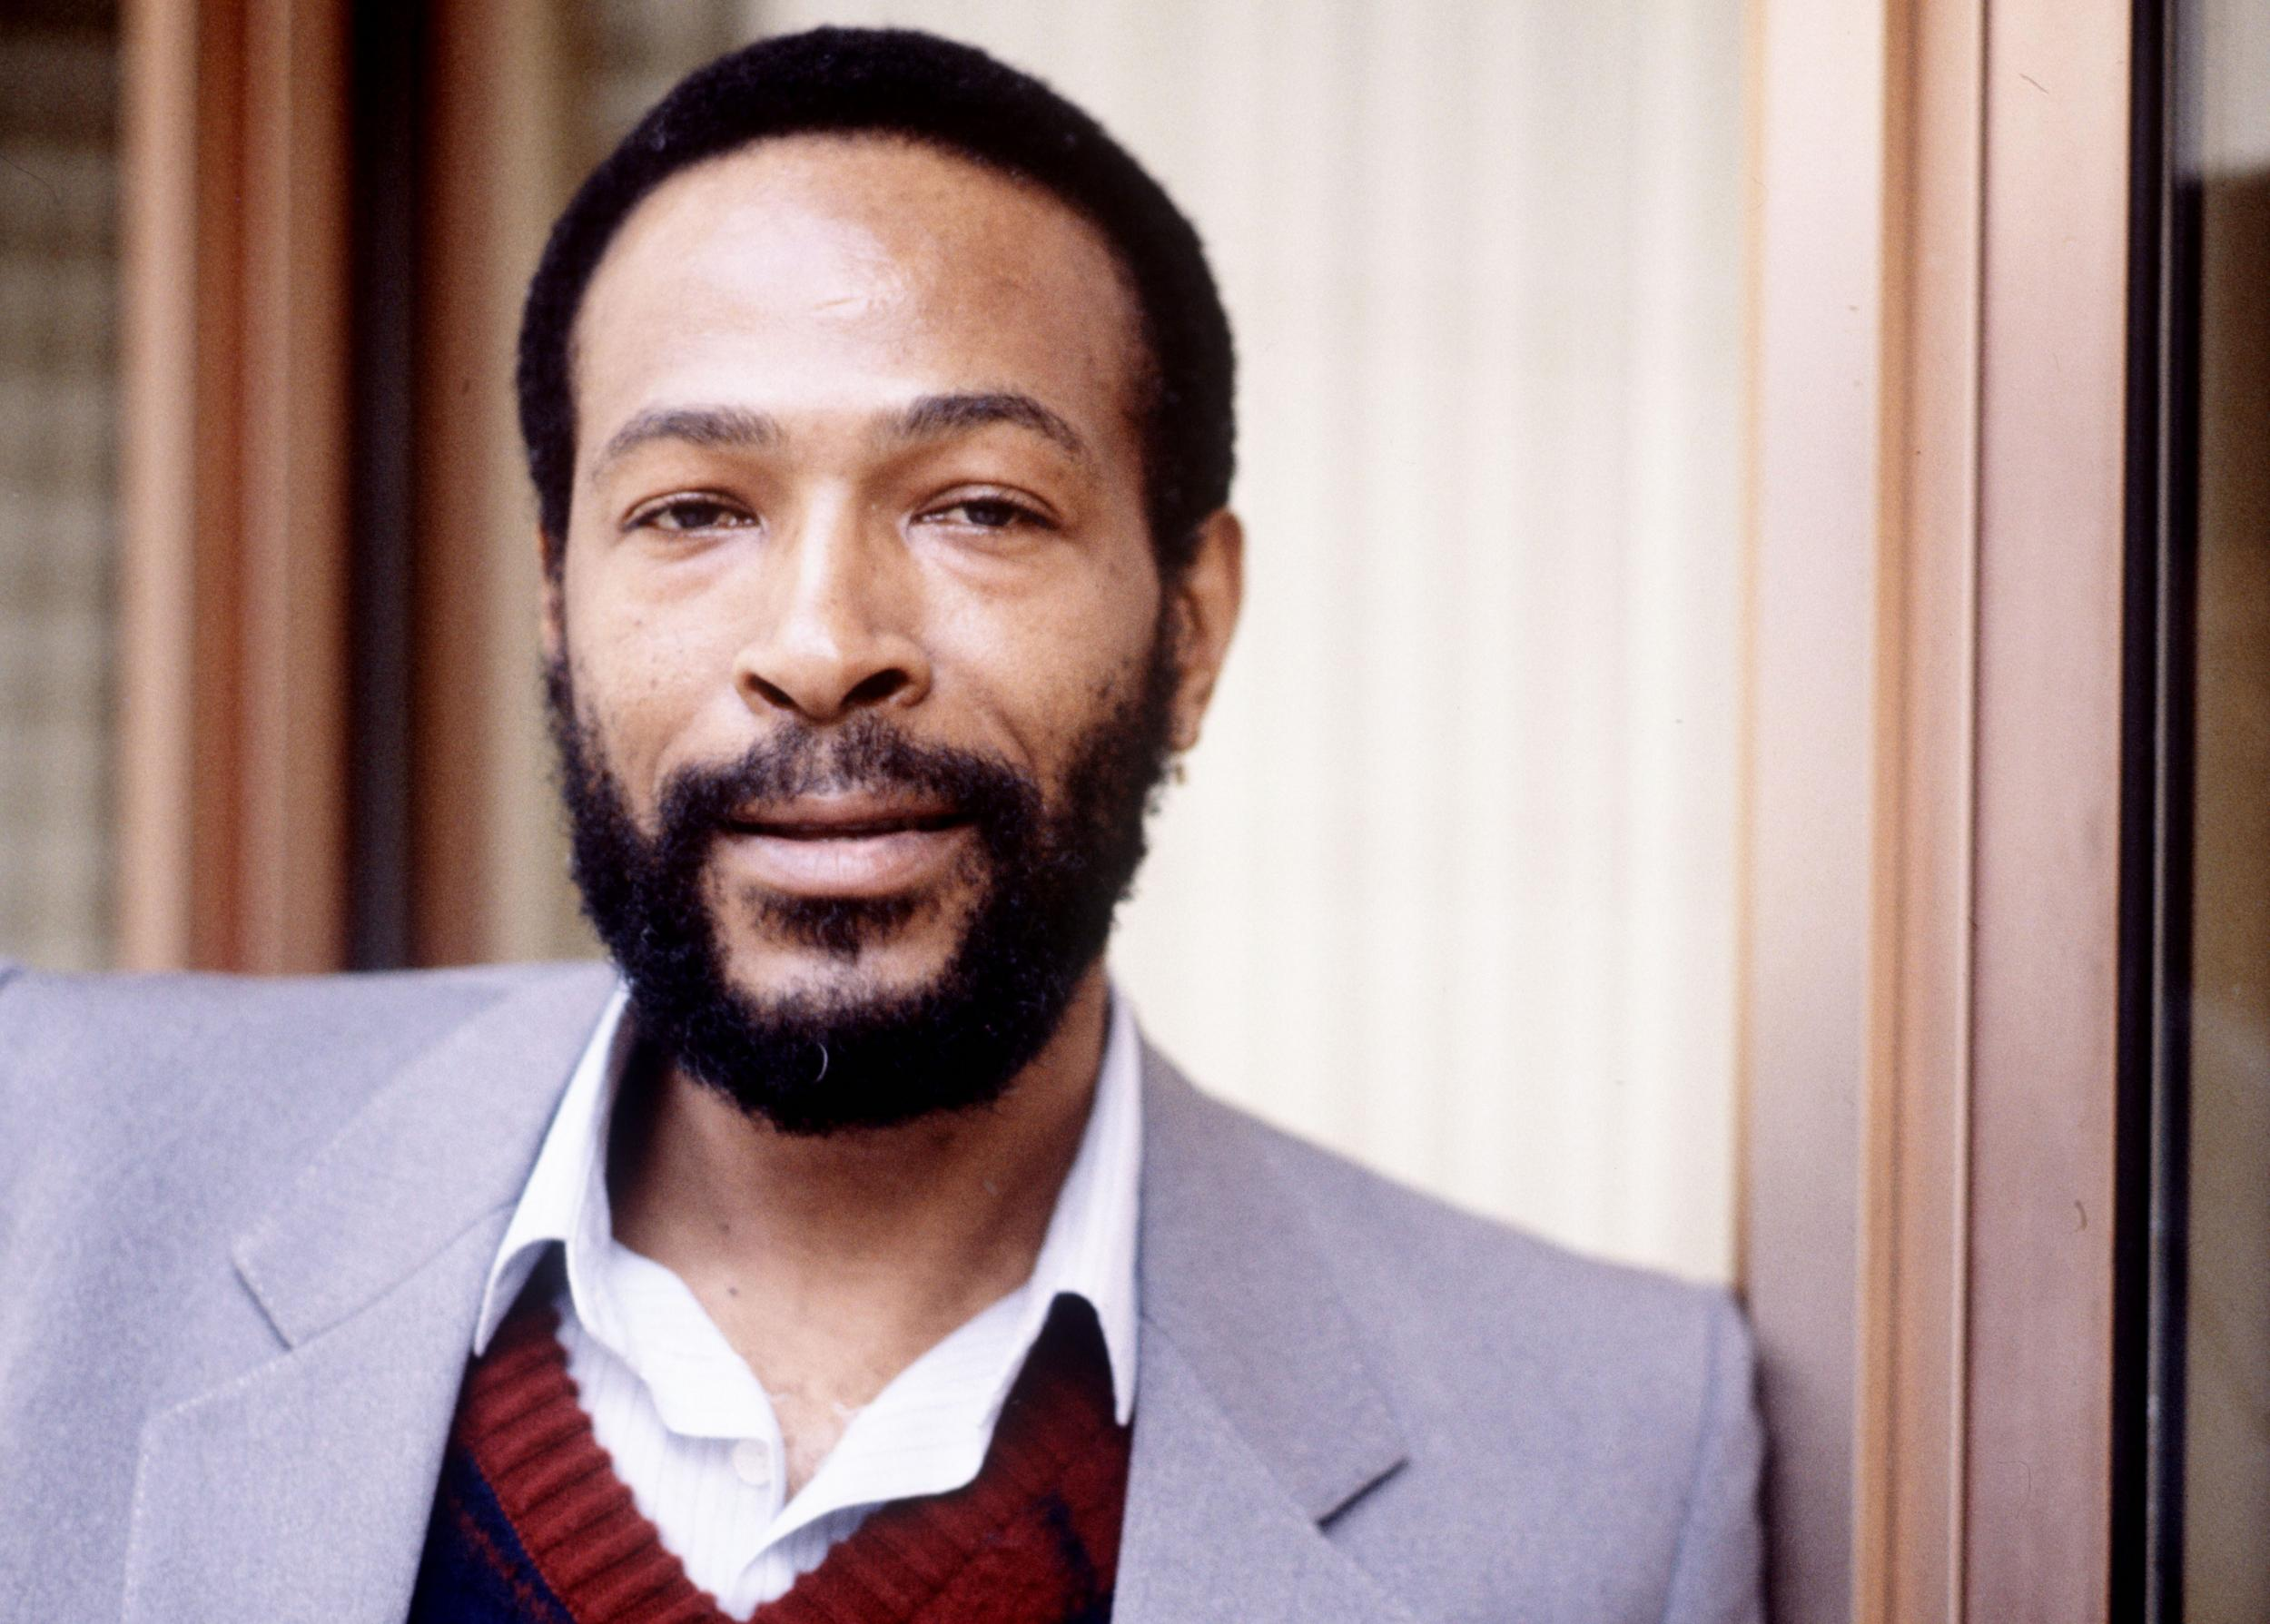 Marvin Gaye, You're the Man review: A sonorous and oddly prescient collection of crooning soul